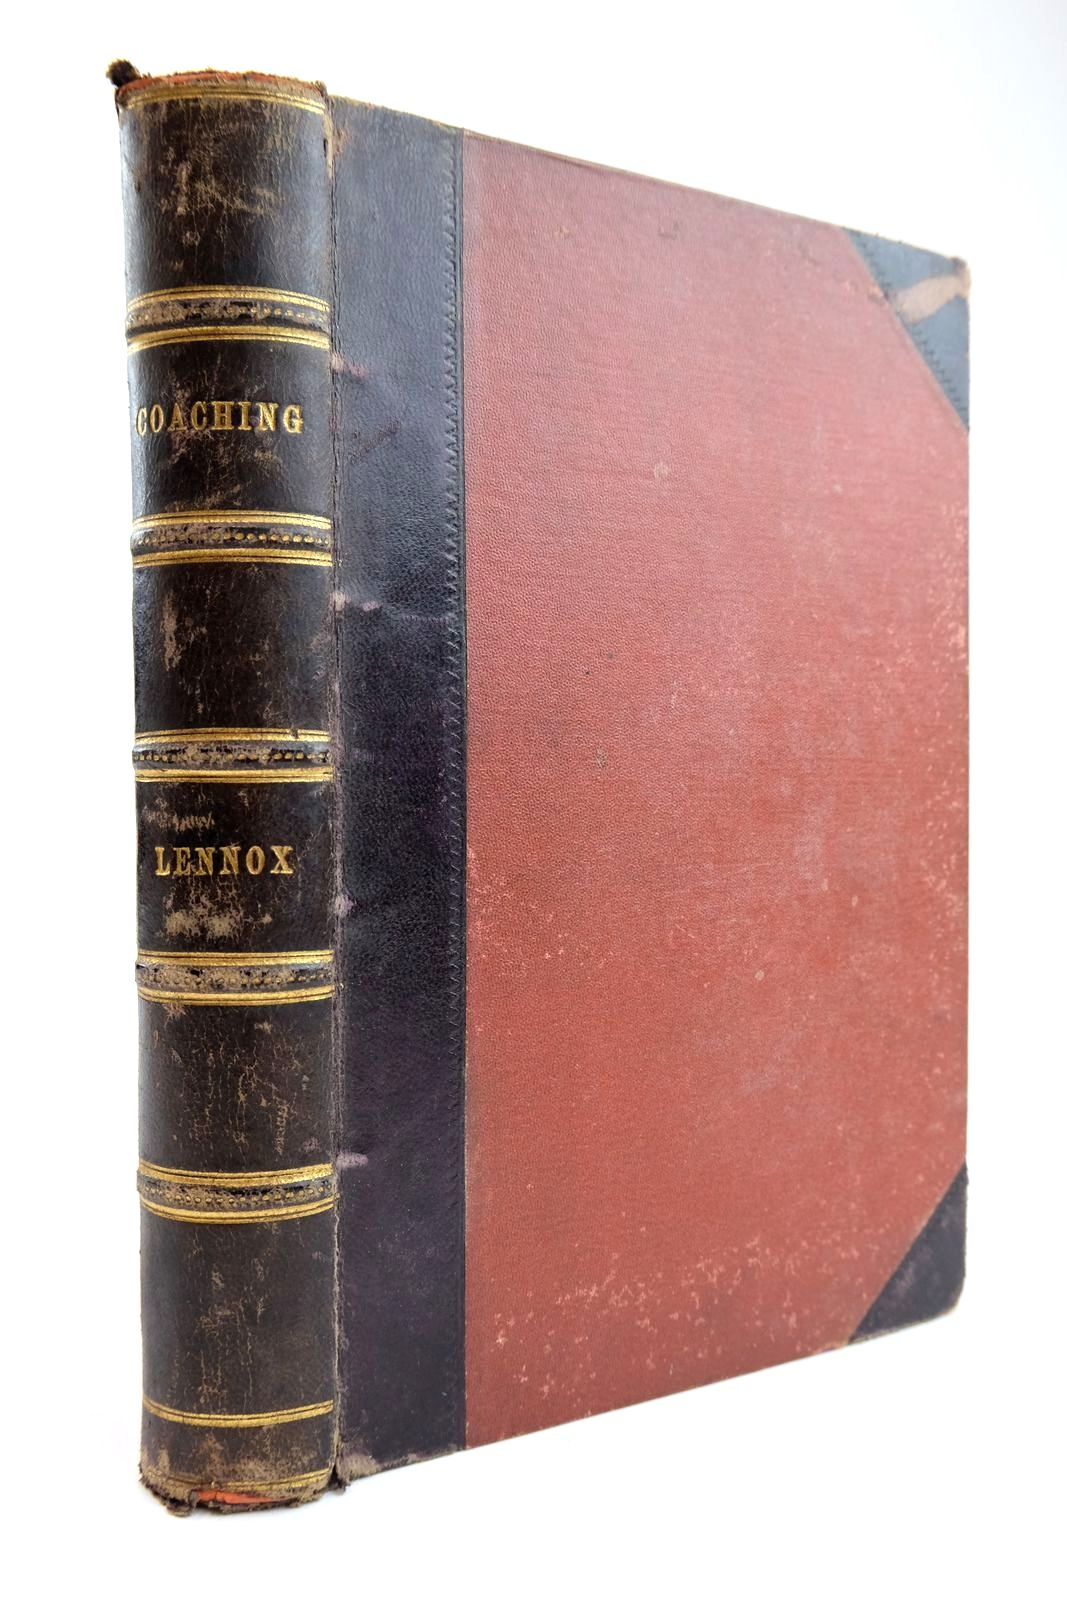 Photo of COACHING, WITH ANEDCOTES OF THE ROAD written by Lennox, William Pitt published by Hurst & Blackett (STOCK CODE: 2133876)  for sale by Stella & Rose's Books